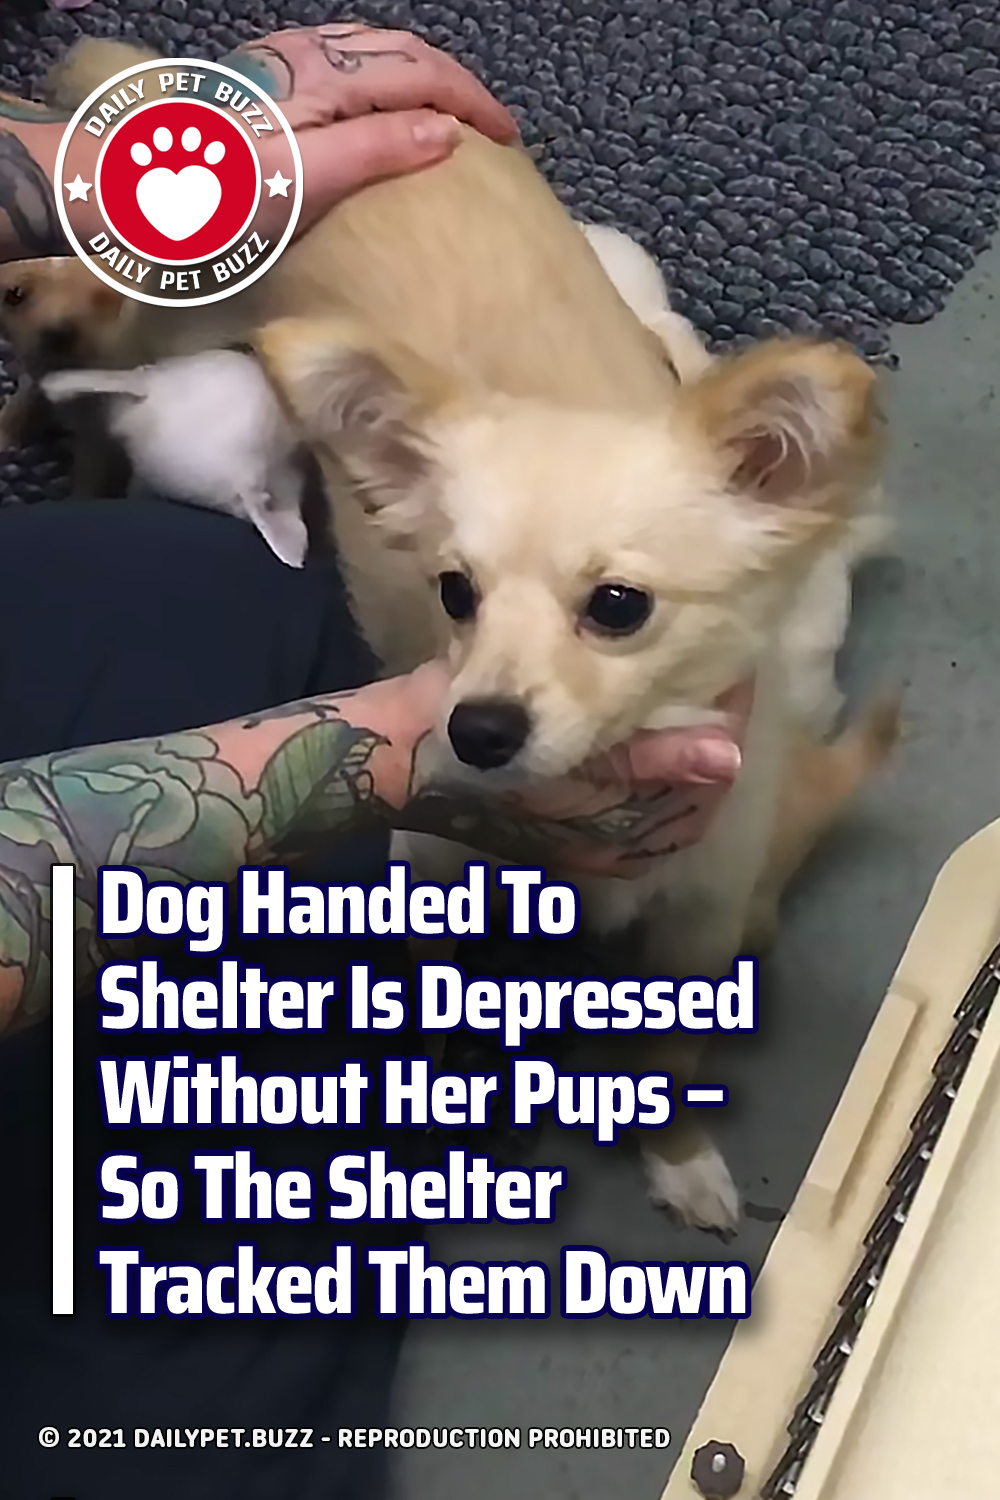 Dog Handed To Shelter Is Depressed Without Her Pups – So The Shelter Tracked Them Down